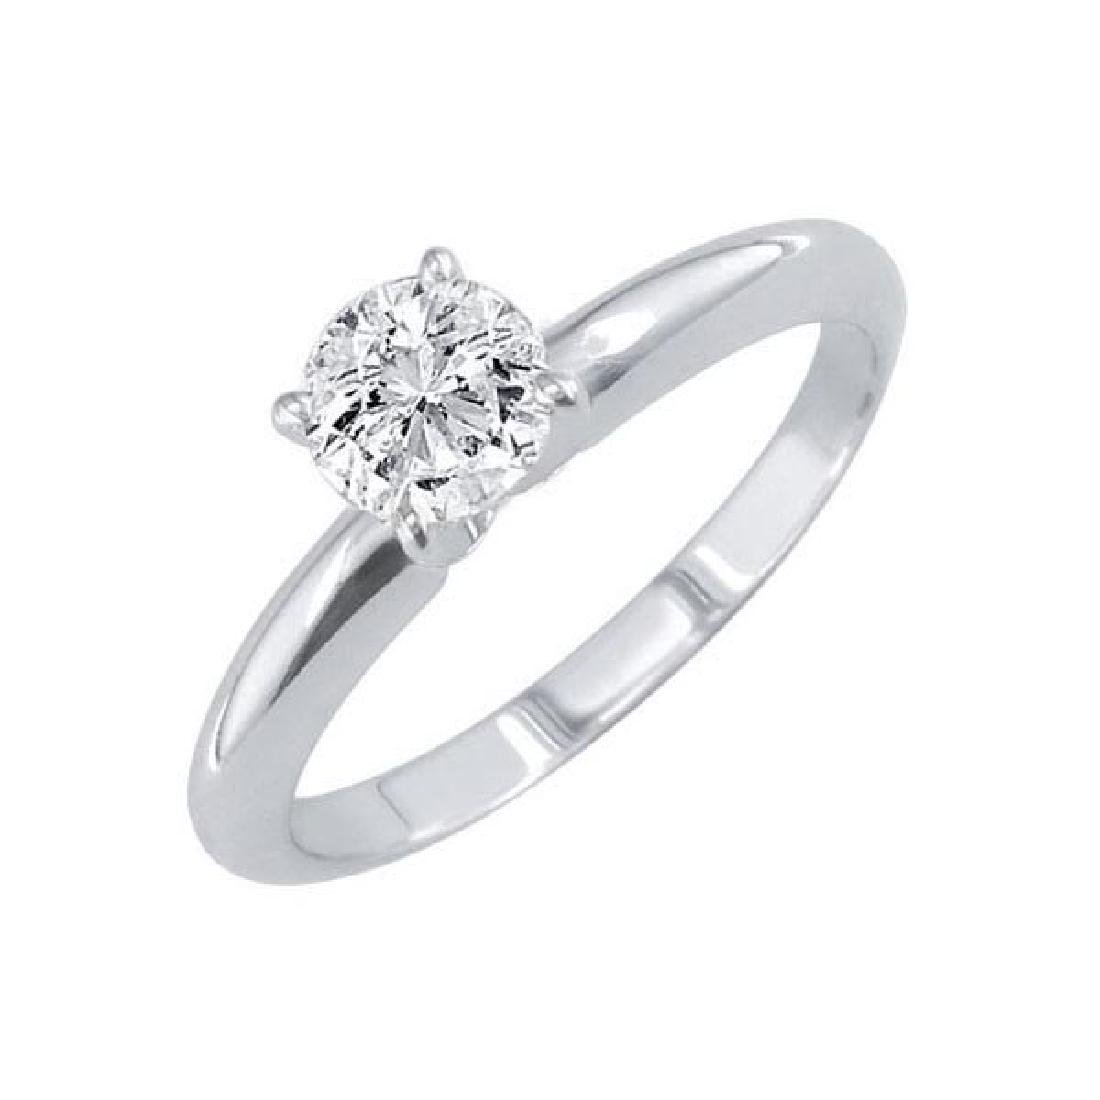 Certified 1.06 CTW Round Diamond Solitaire 14k Ring G/I